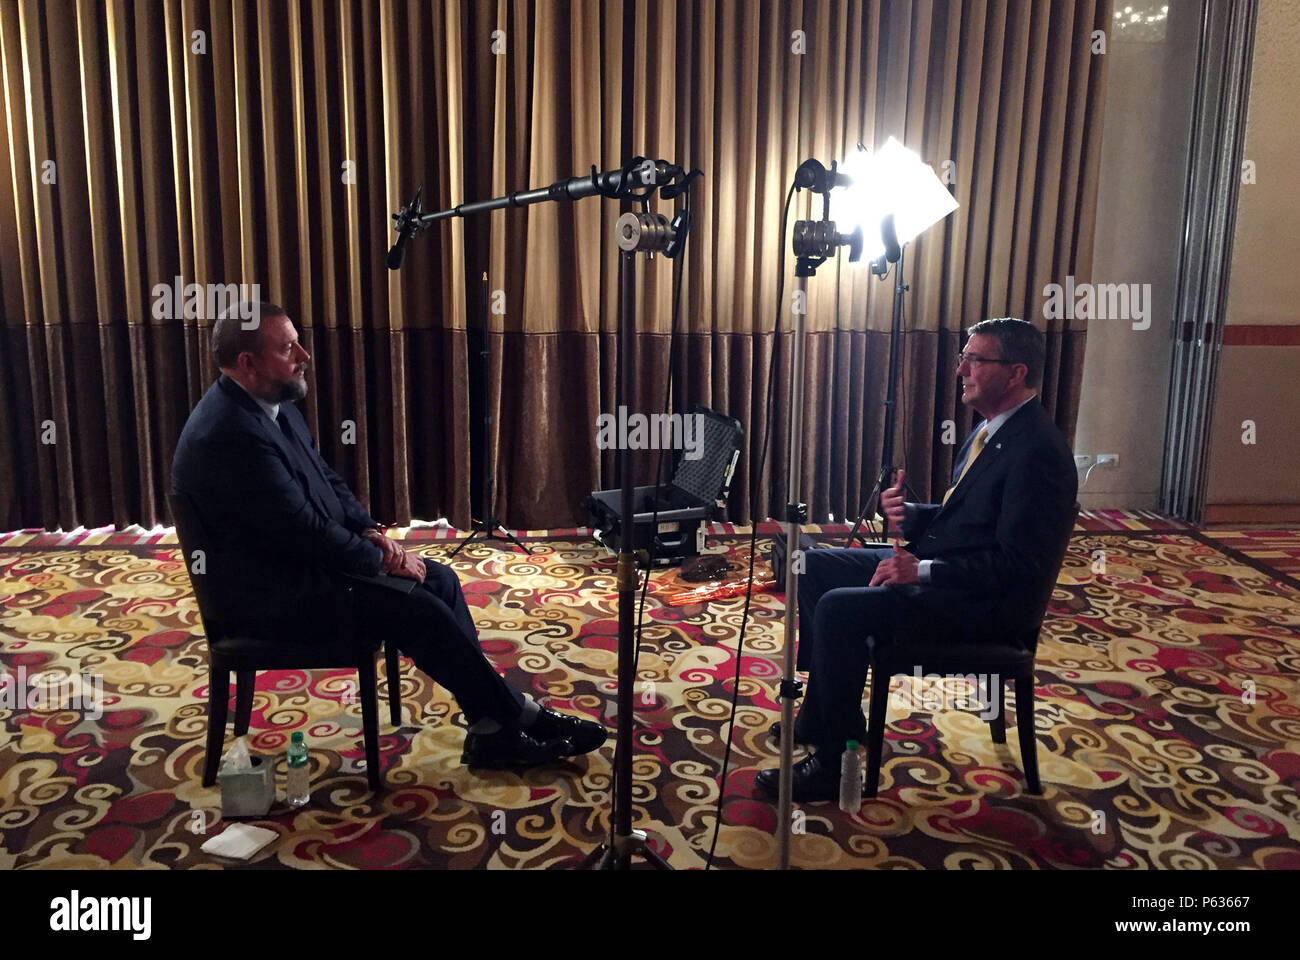 Secretary of Defense Ash Carter is interviewed by Shane Smith of Vice in Manila, Philippines April 16, 2016. Carter is visiting the Philippines to solidify the rebalance to the Asia-Pacific region.(Photo by Senior Master Sgt. Adrian Cadiz)(Released) Stock Photo